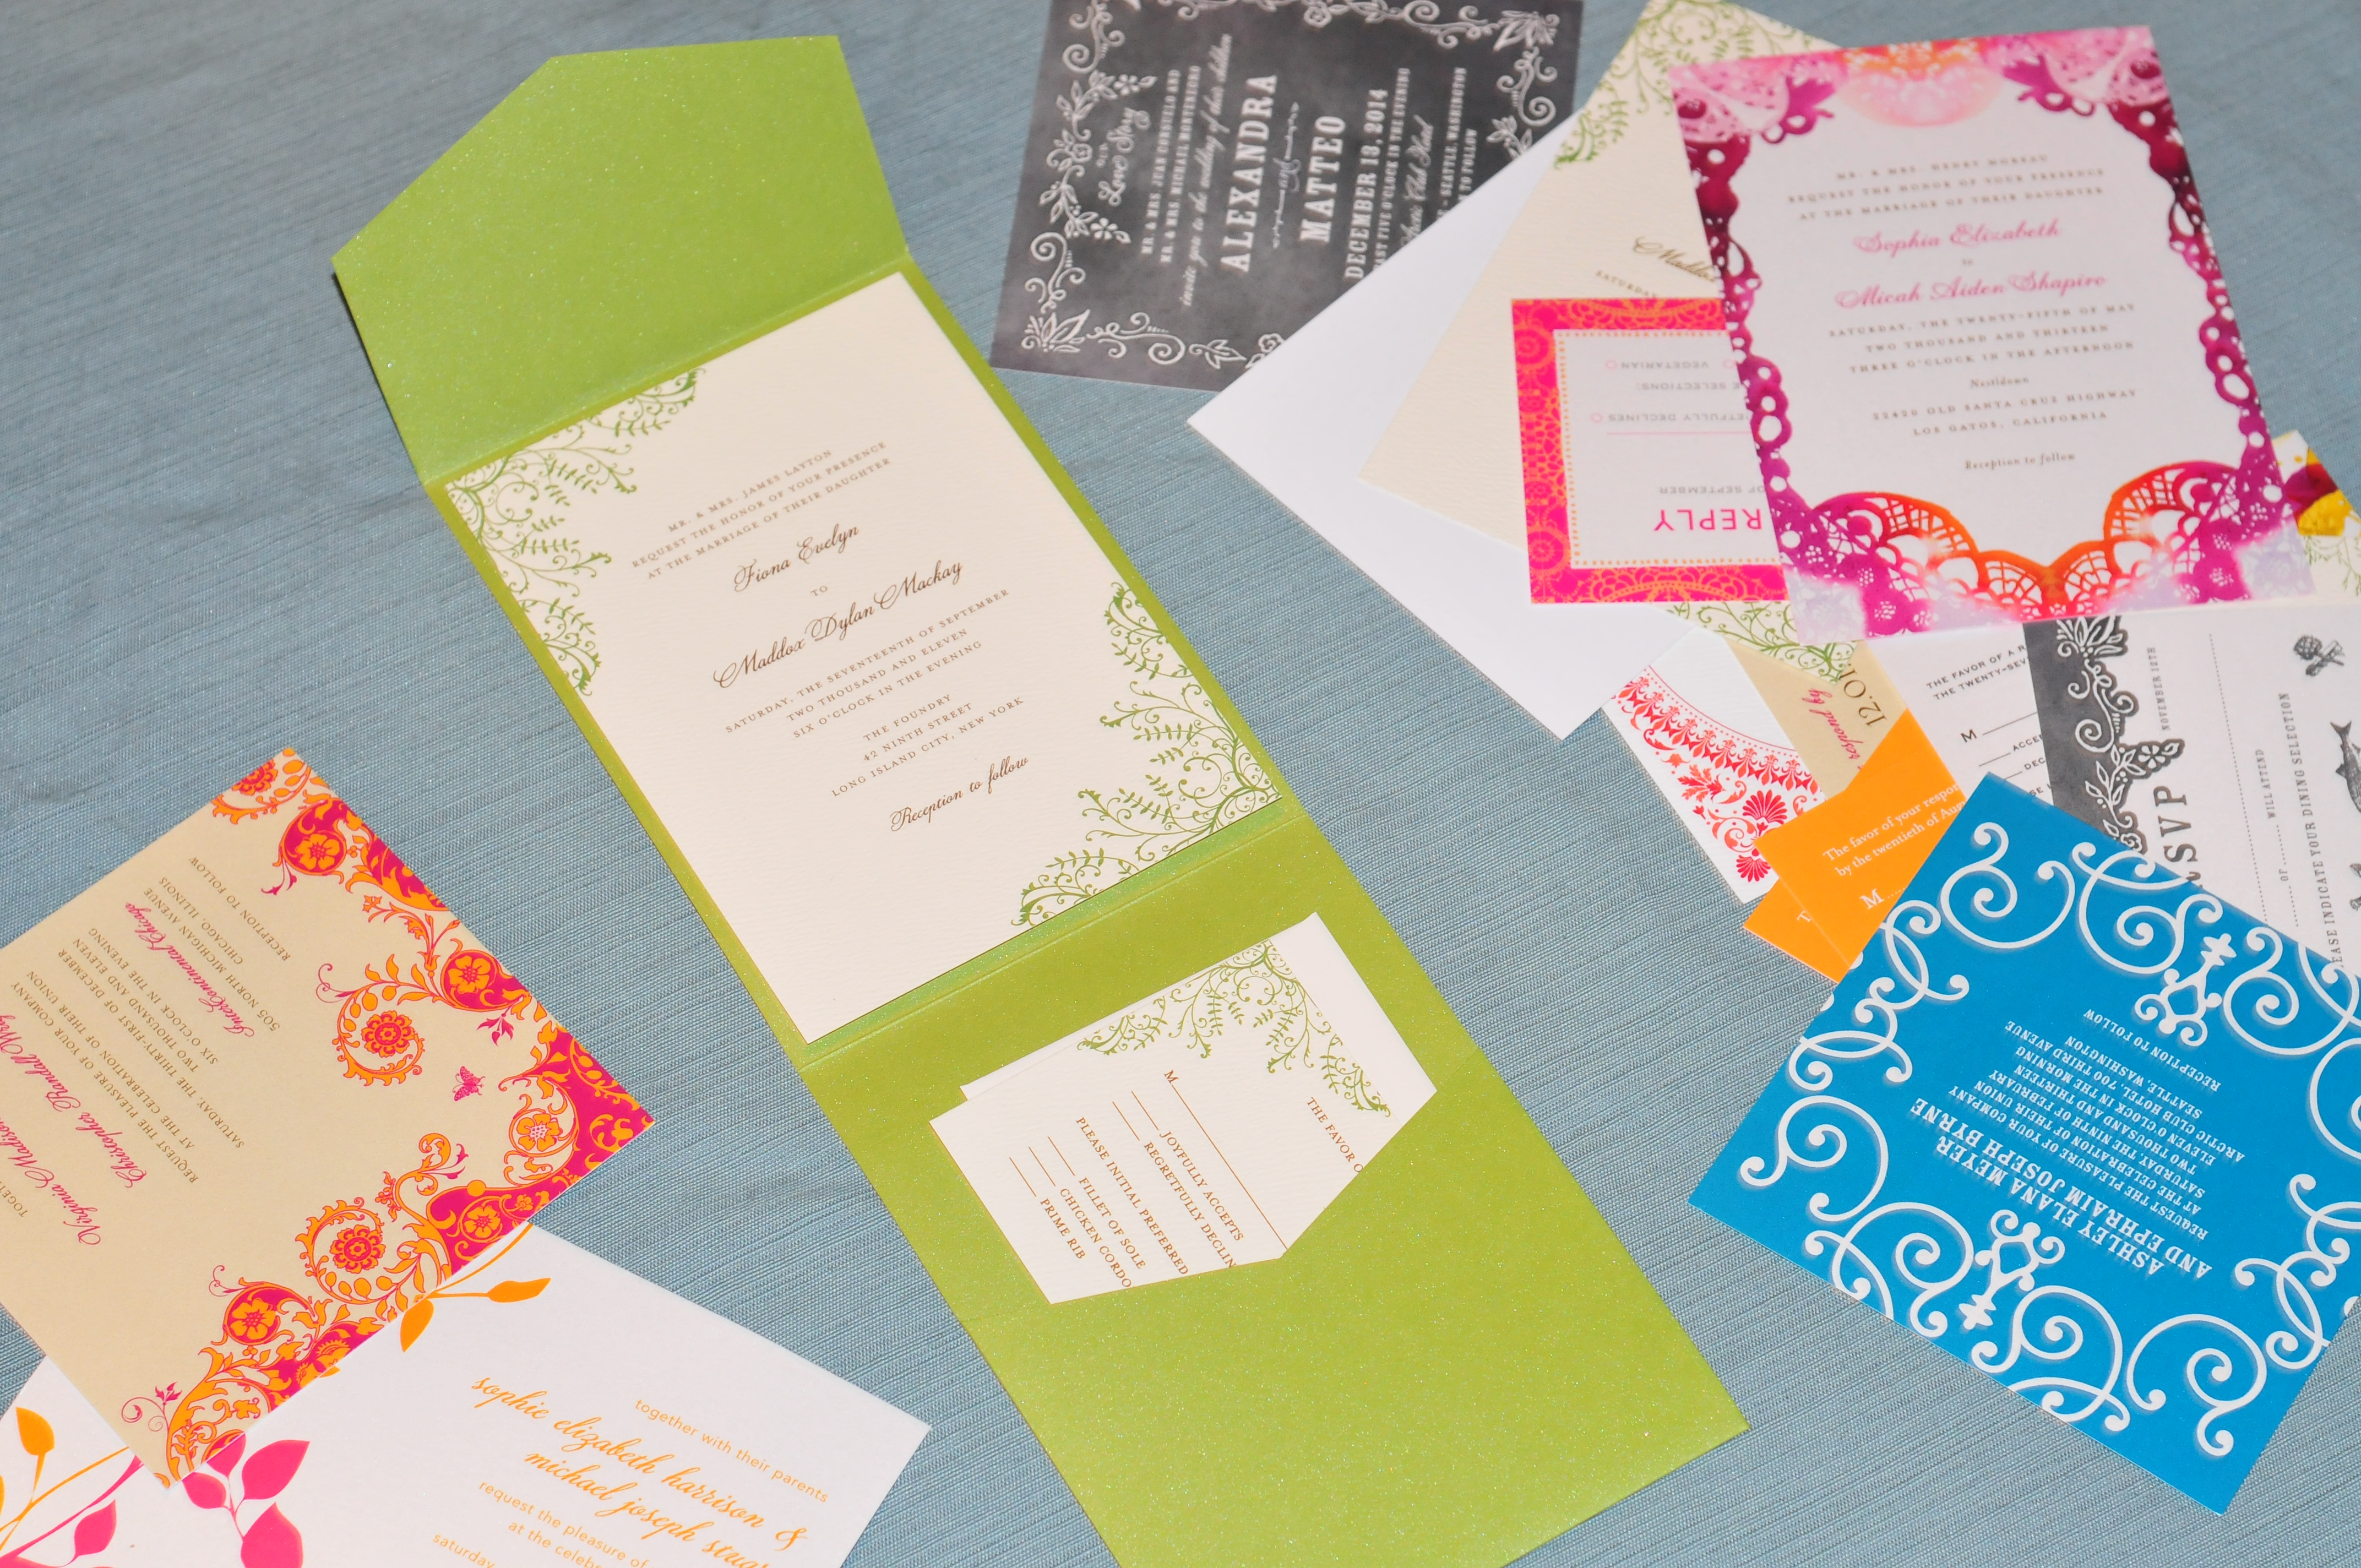 the wedding paper divas samples are here